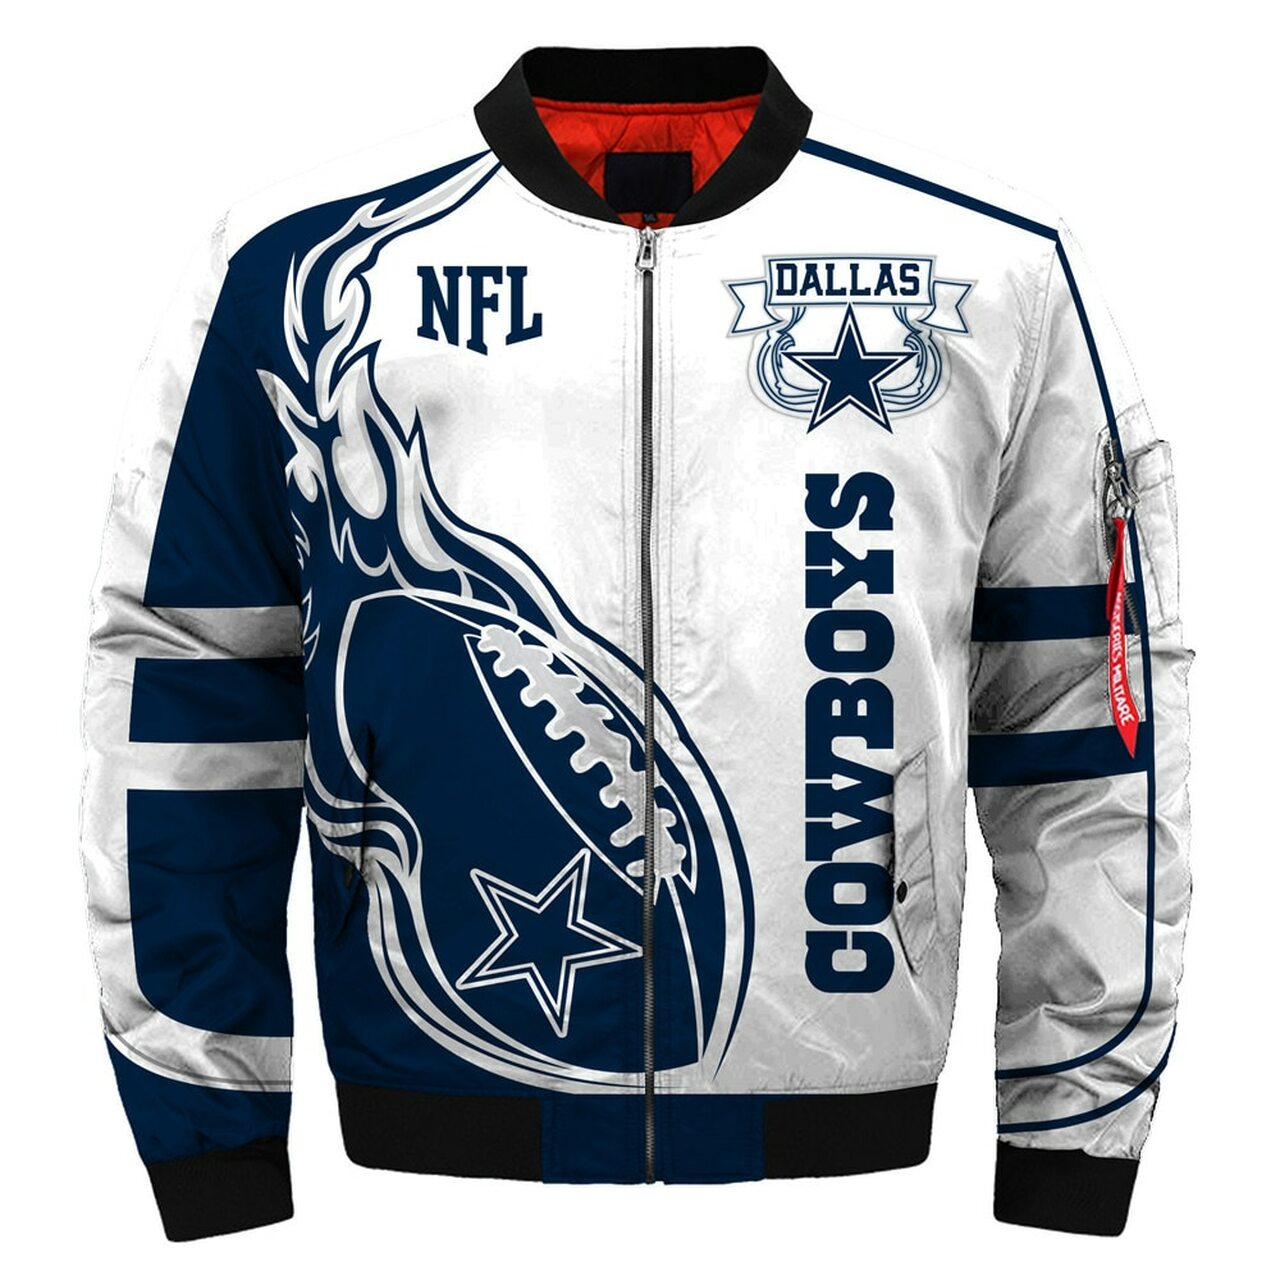 official photos 862f8 6affb **(OFFICIALLY-LICENSED-N.F.L.DALLAS-COWBOYS & OFFICIAL-COWBOYS-TEAM-COLORS  & OFFICIAL-CLASSIC-COWBOYS-LOGOS-BOMBER/FLIGHT-JACKET & ...